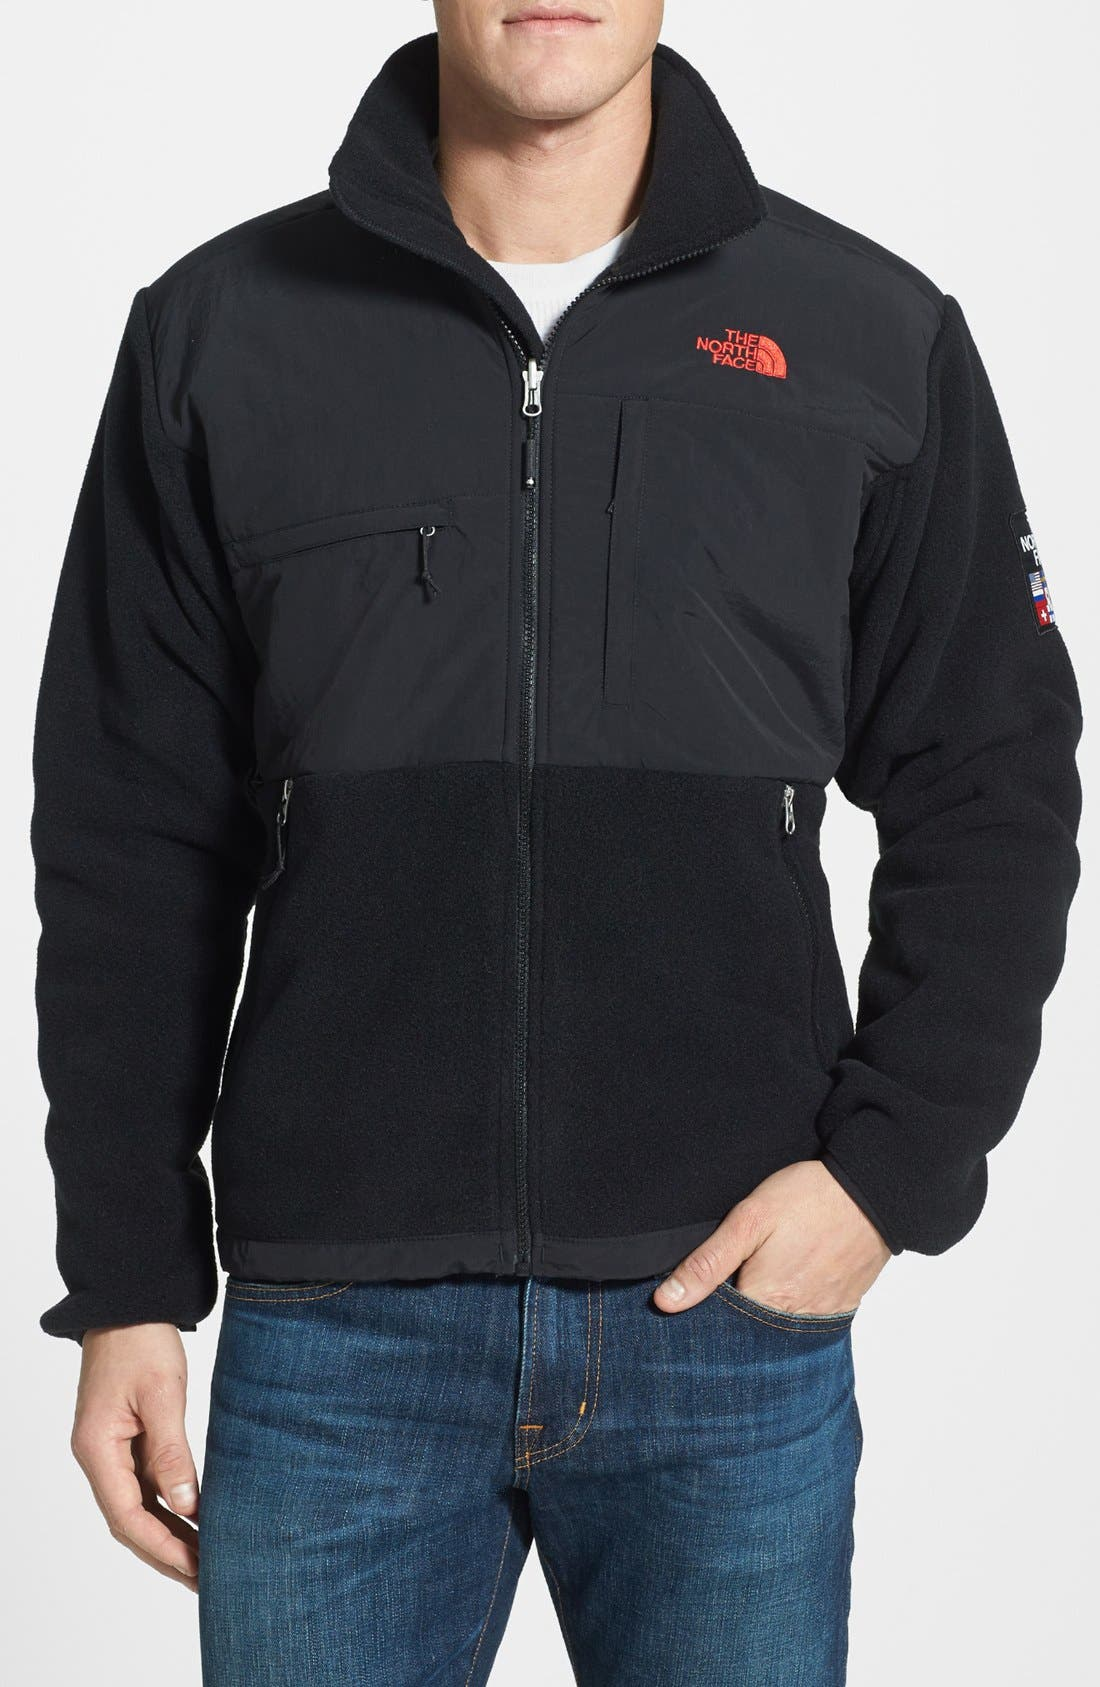 Alternate Image 1 Selected - The North Face 'Denali - International Collection' Recycled Fleece Jacket